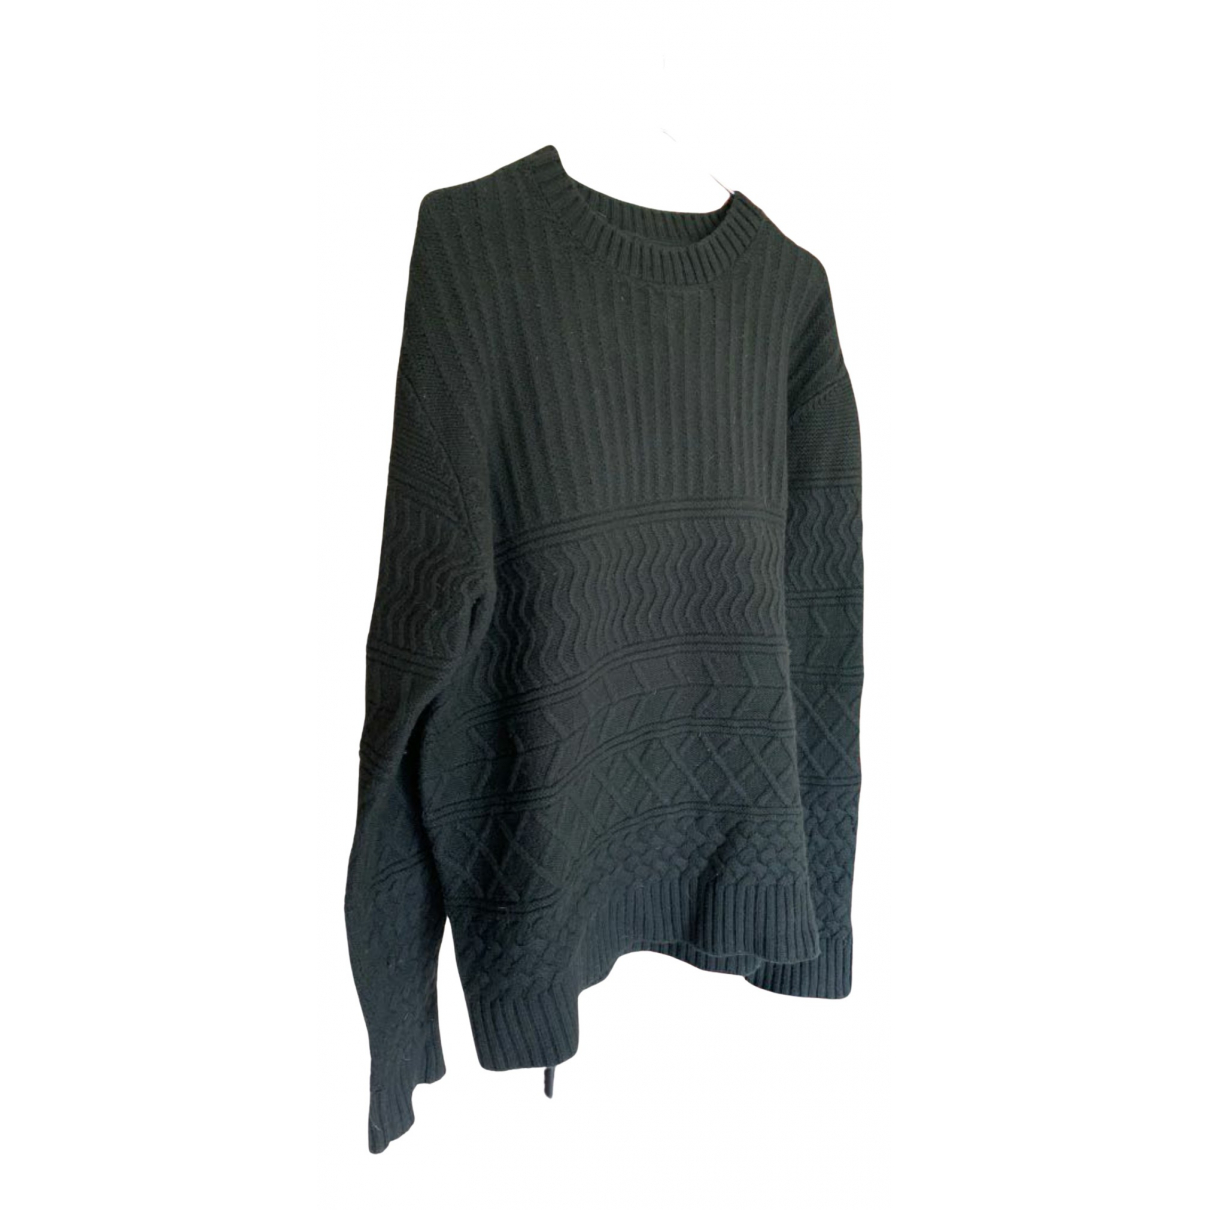 Maison Martin Margiela N Khaki Wool Knitwear & Sweatshirts for Men S International